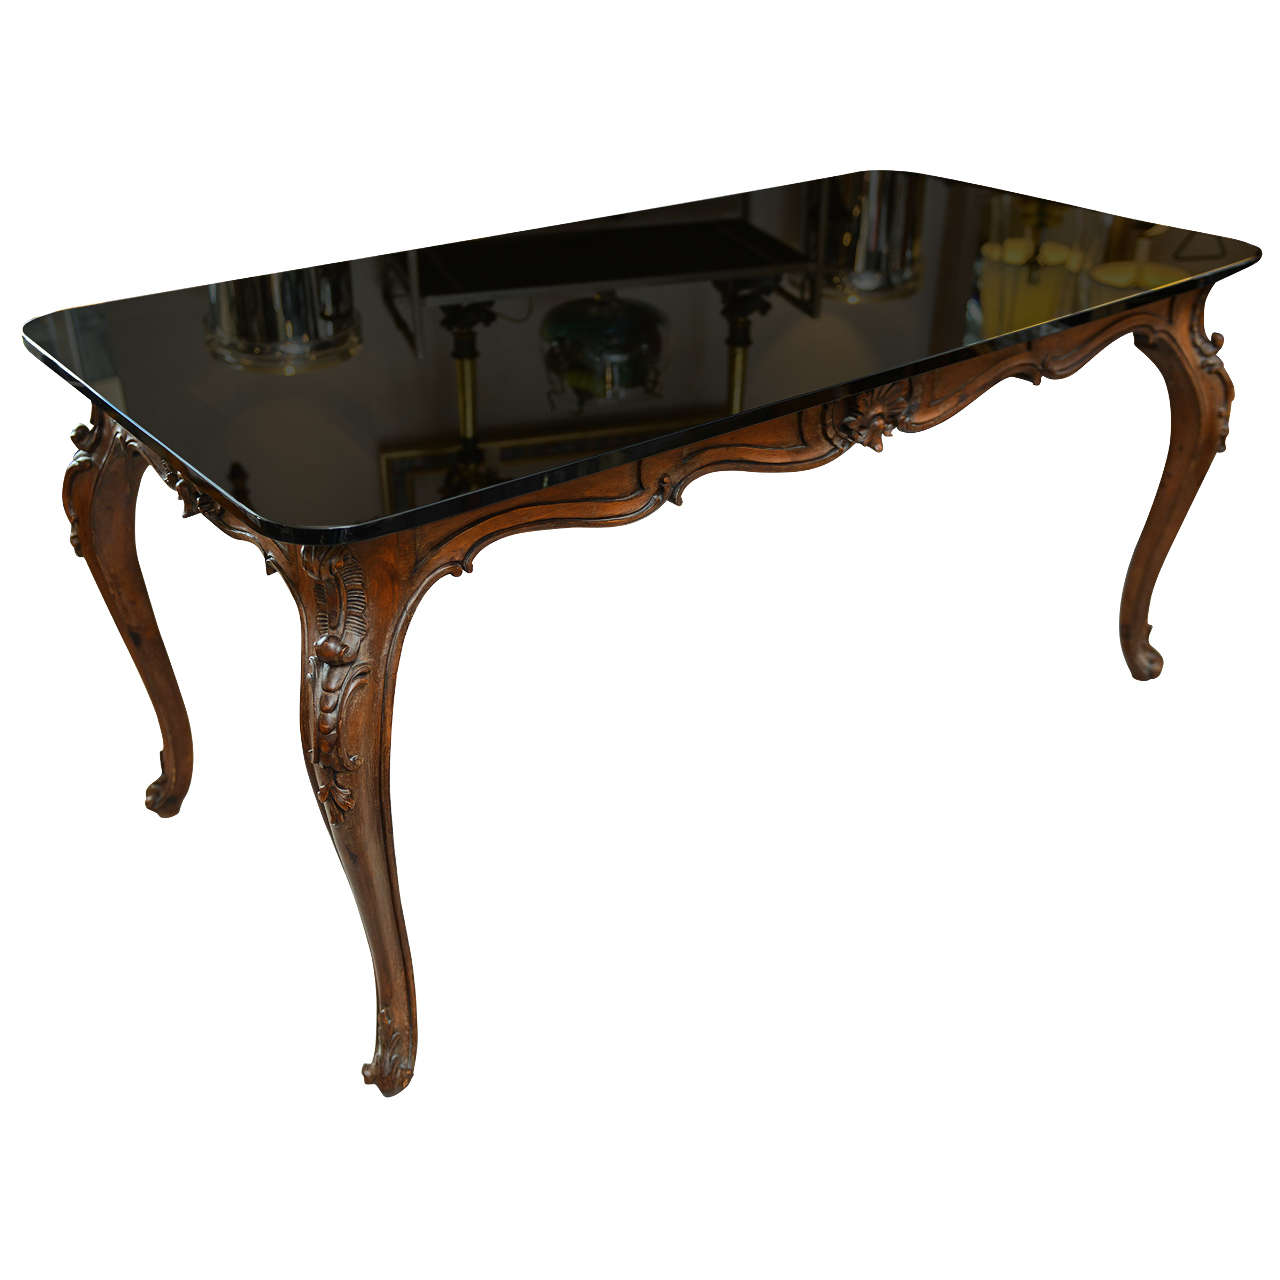 Louis Xv Style Table With Smoked Glass Top At 1stdibs